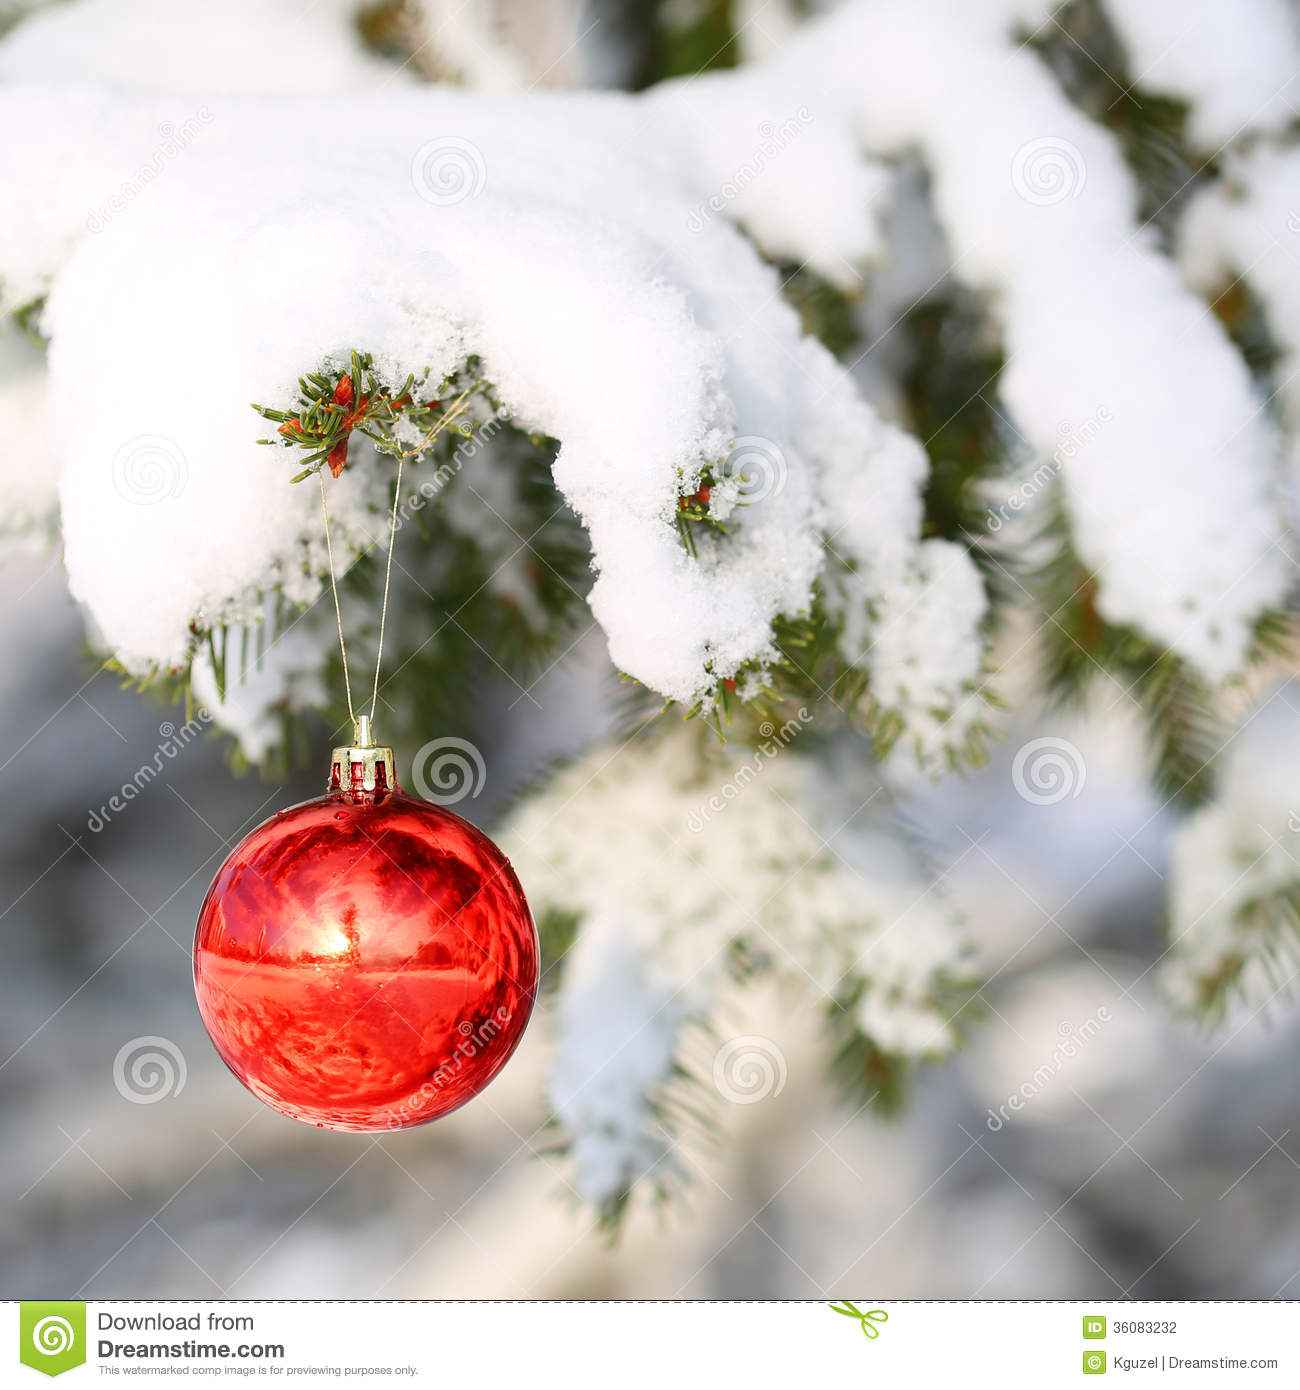 red ball on christmas tree branch covered with snow. Black Bedroom Furniture Sets. Home Design Ideas